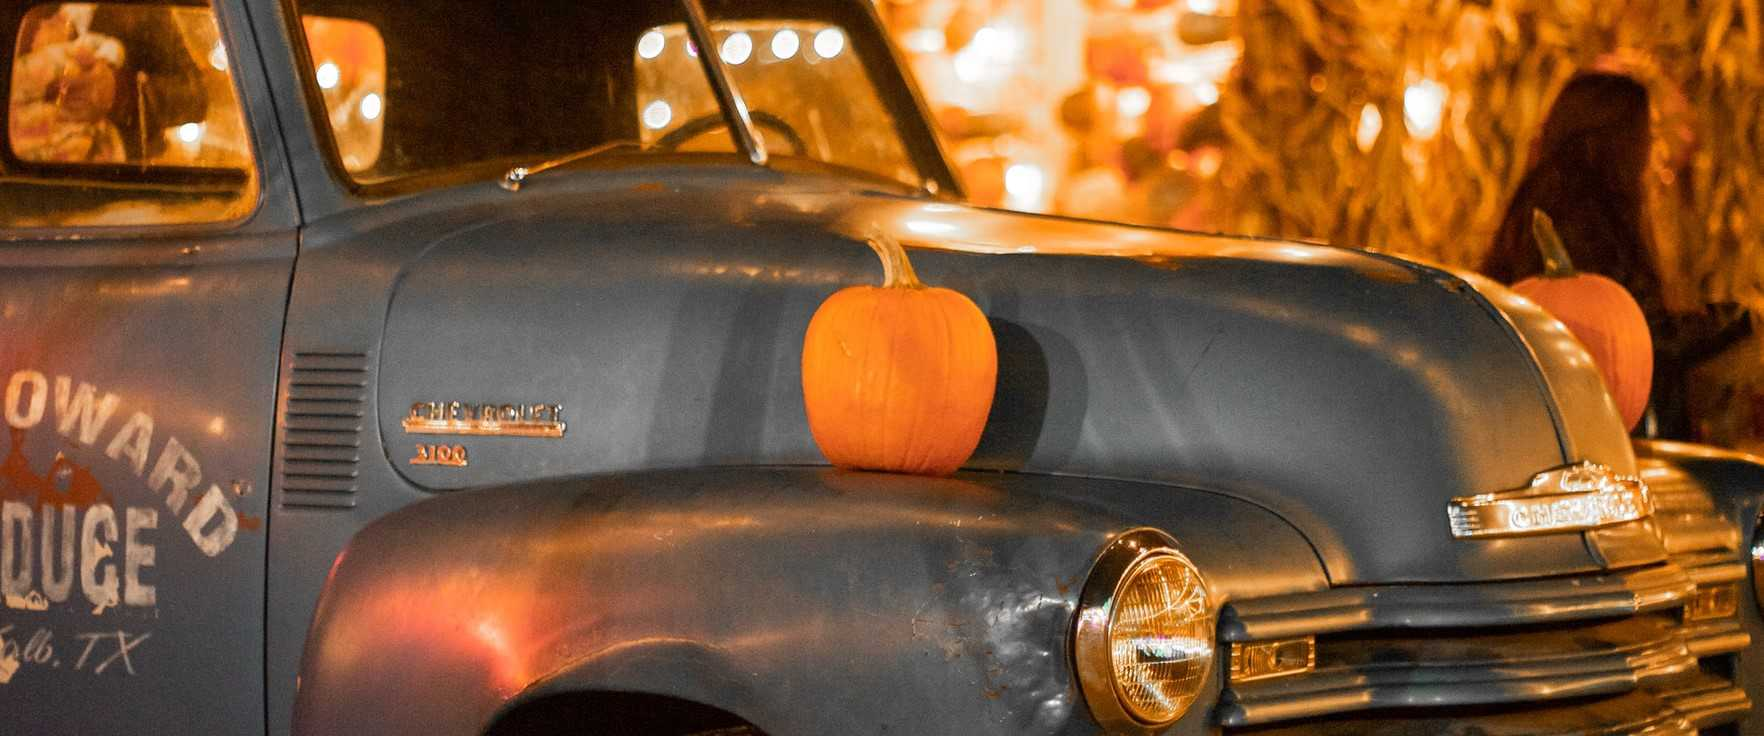 Old Car with Halloween Decoration | Breast Cancer Car Donations